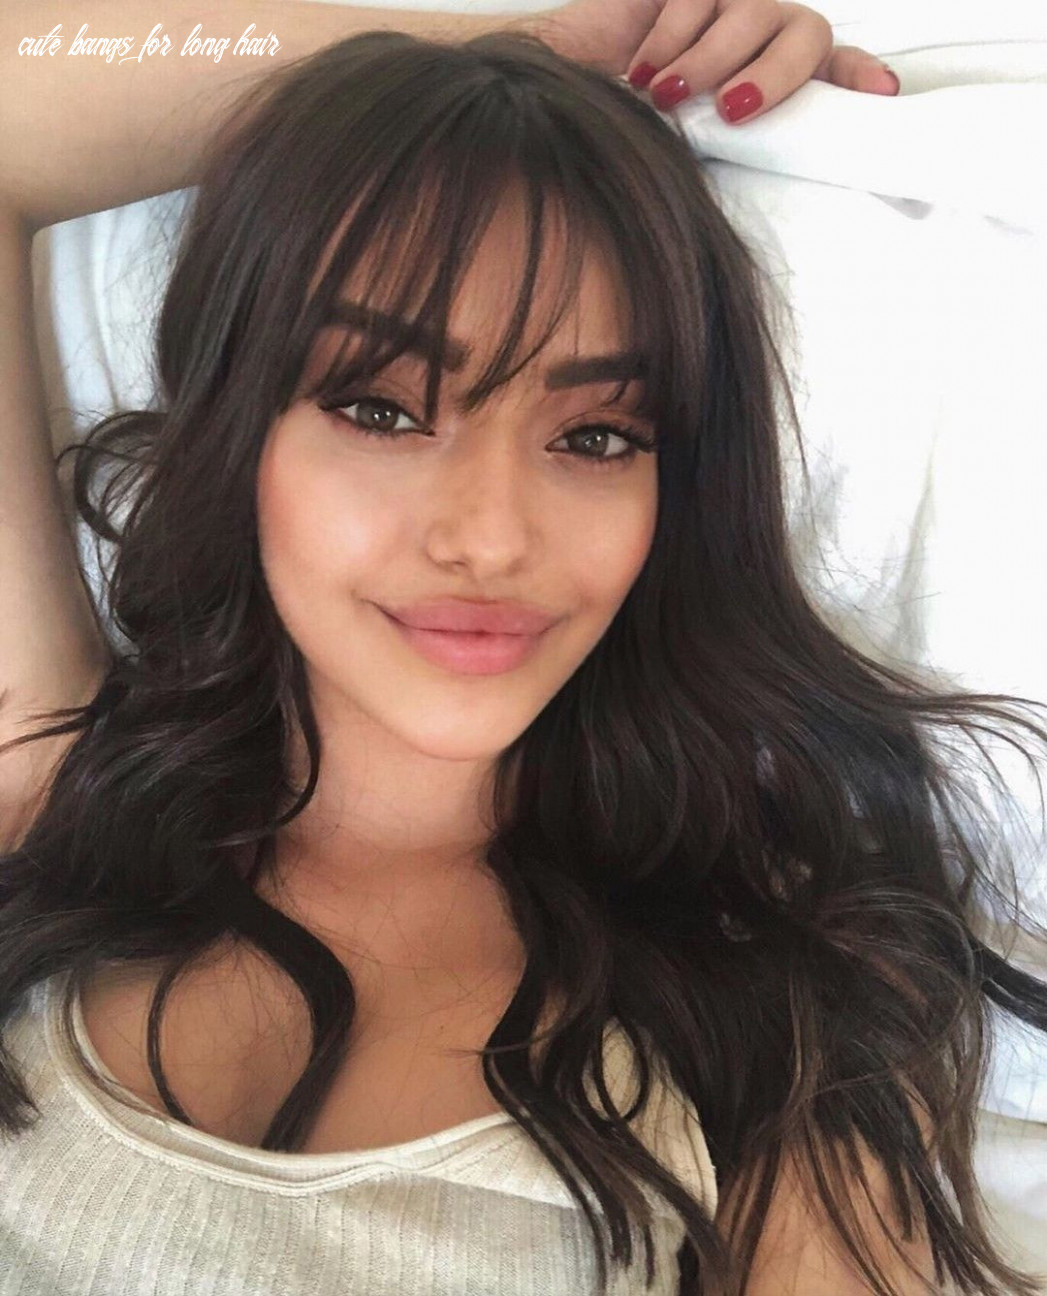 Pin by heillys cátala on likes in 8 | long hair with bangs